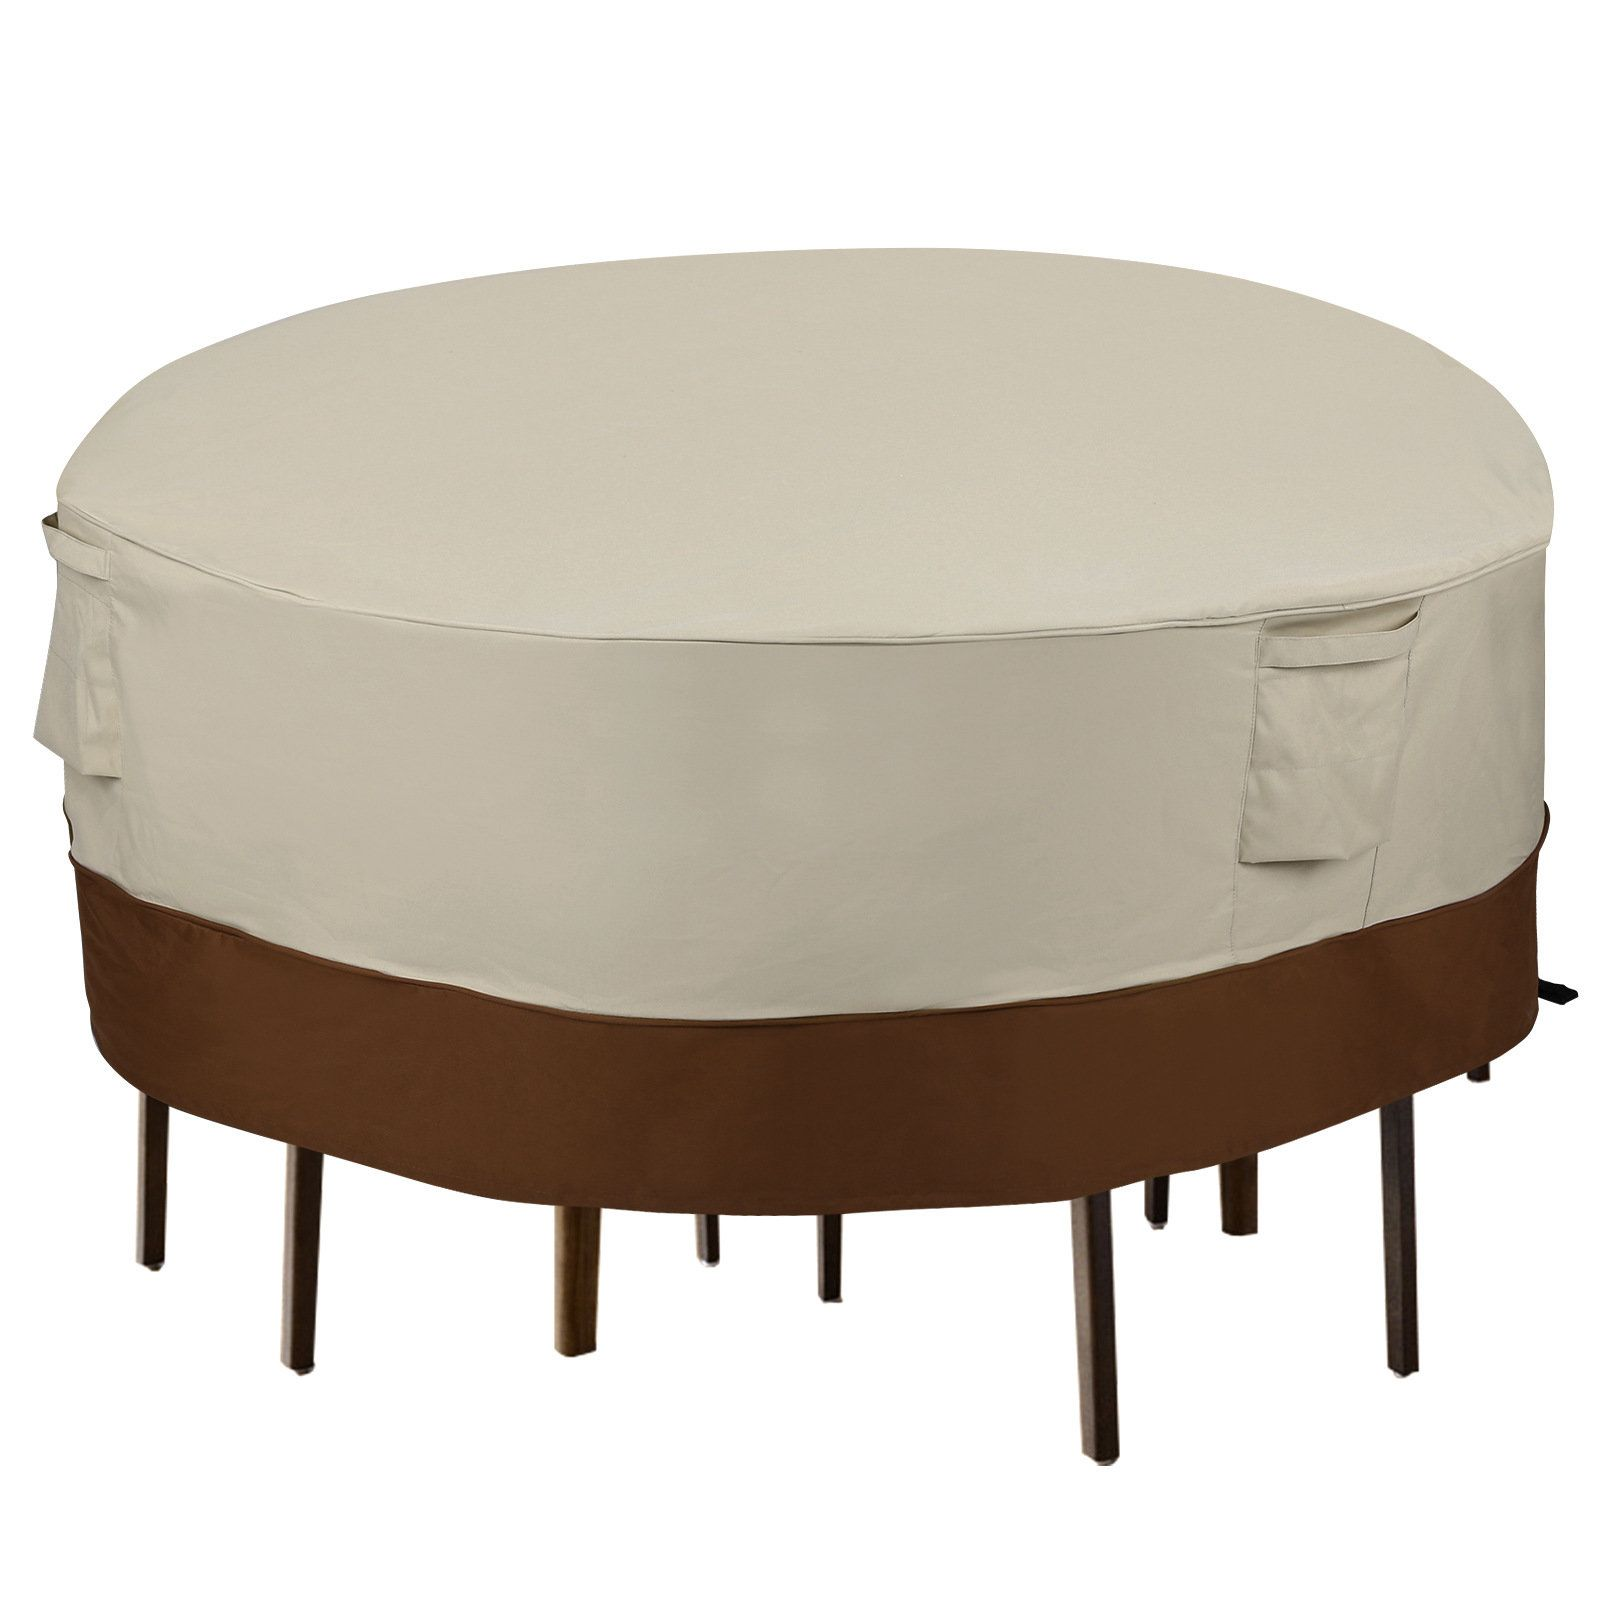 Elegant Patio Table And Chair Dining Set Cover Outdoor Tables